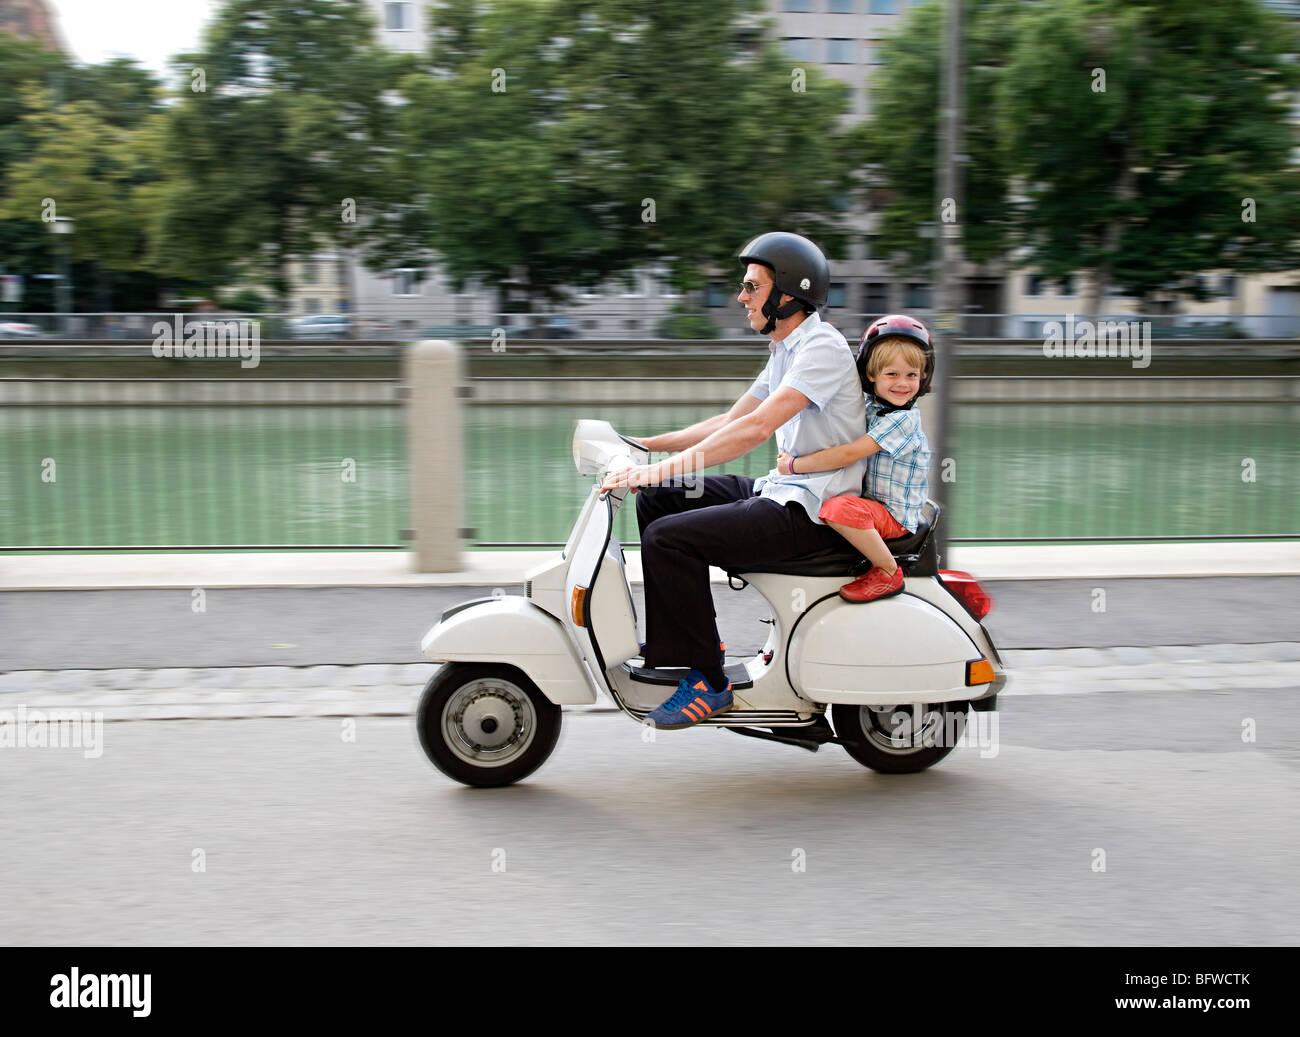 father and son on scooter - Stock Image